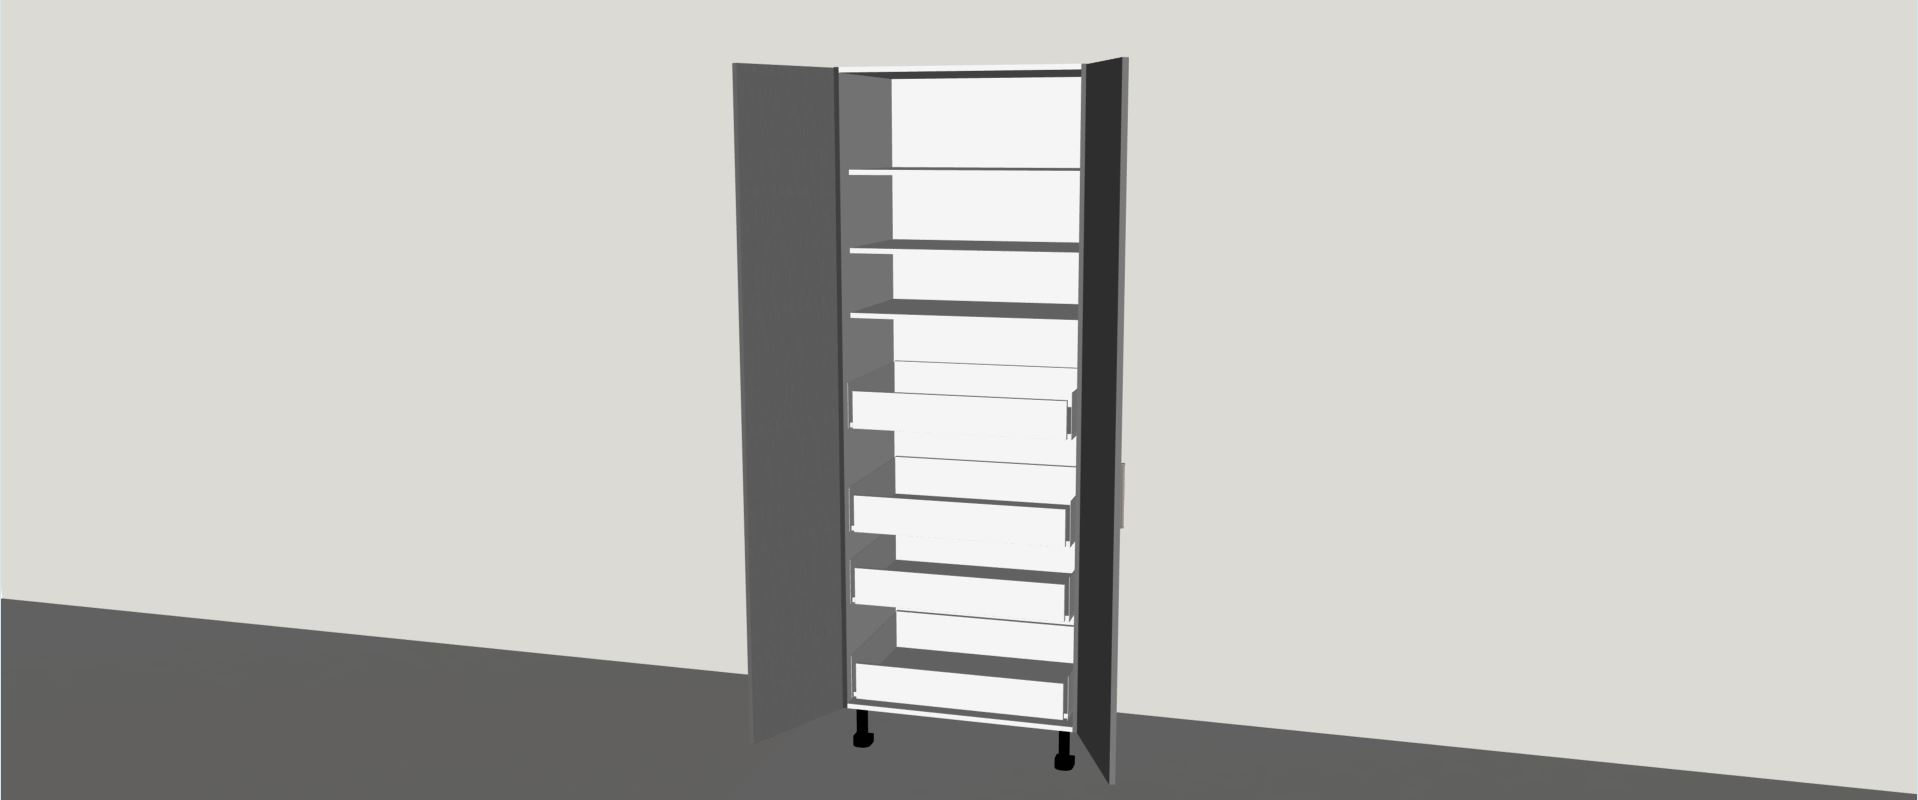 Tall Inner Drawer Pantry 2 Door 800mm Wide: pantry 800mm